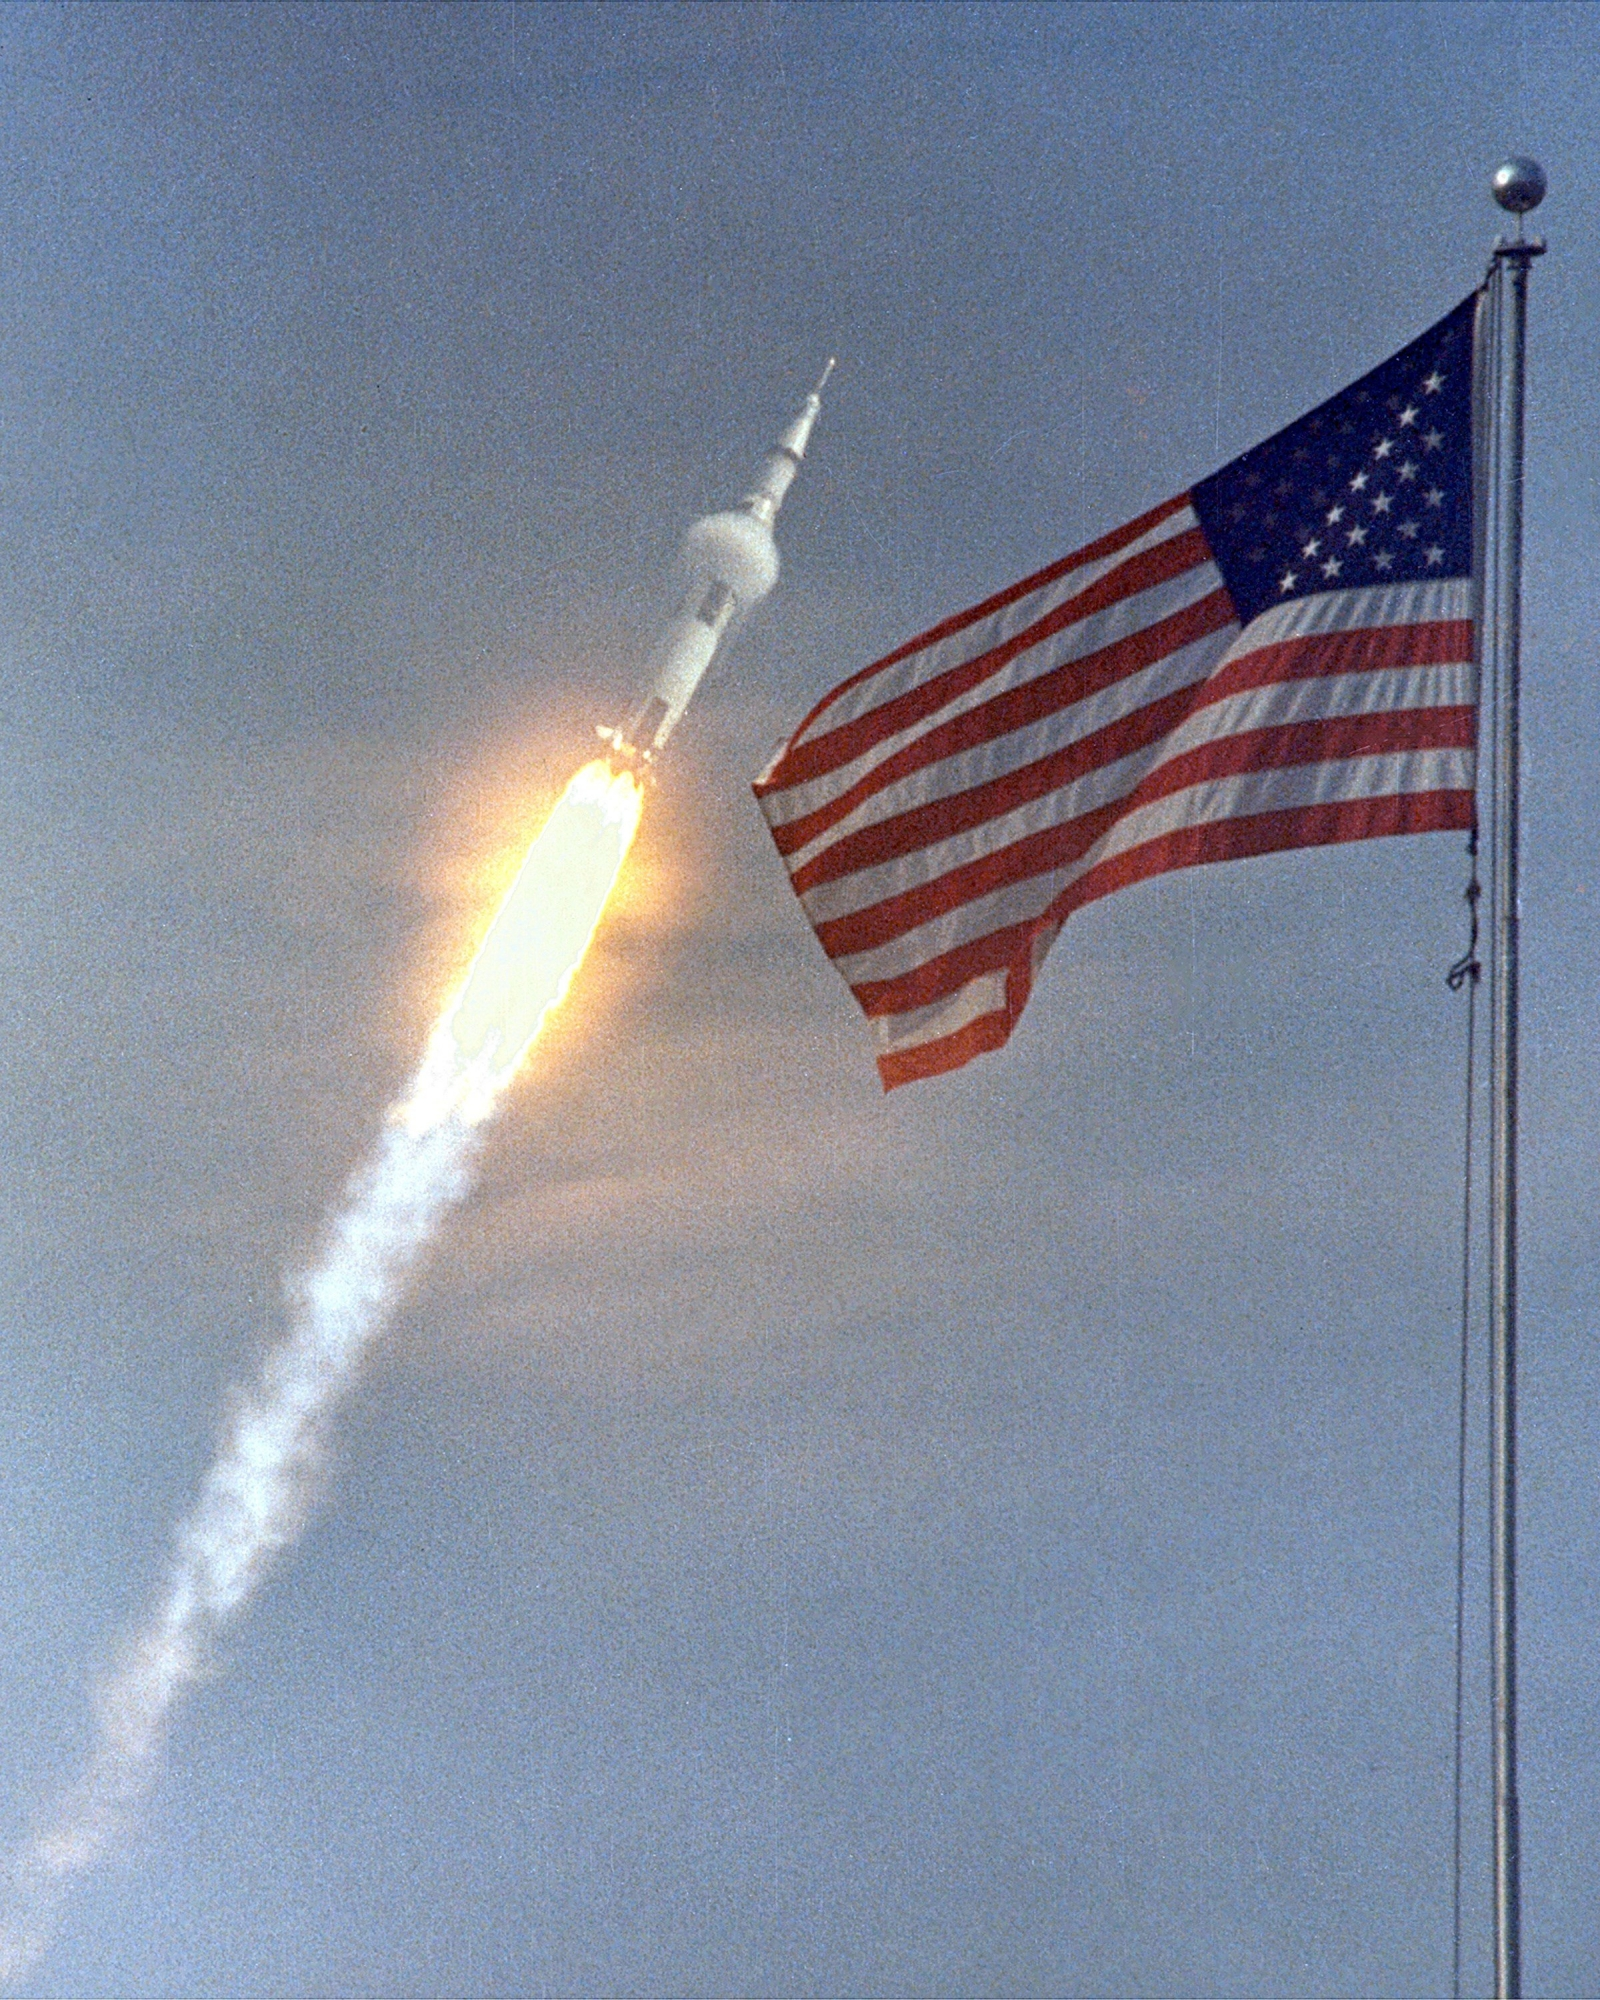 07/15/14. Photo of the launching of Apolo 11 in Cap Canaveral. (NASA)